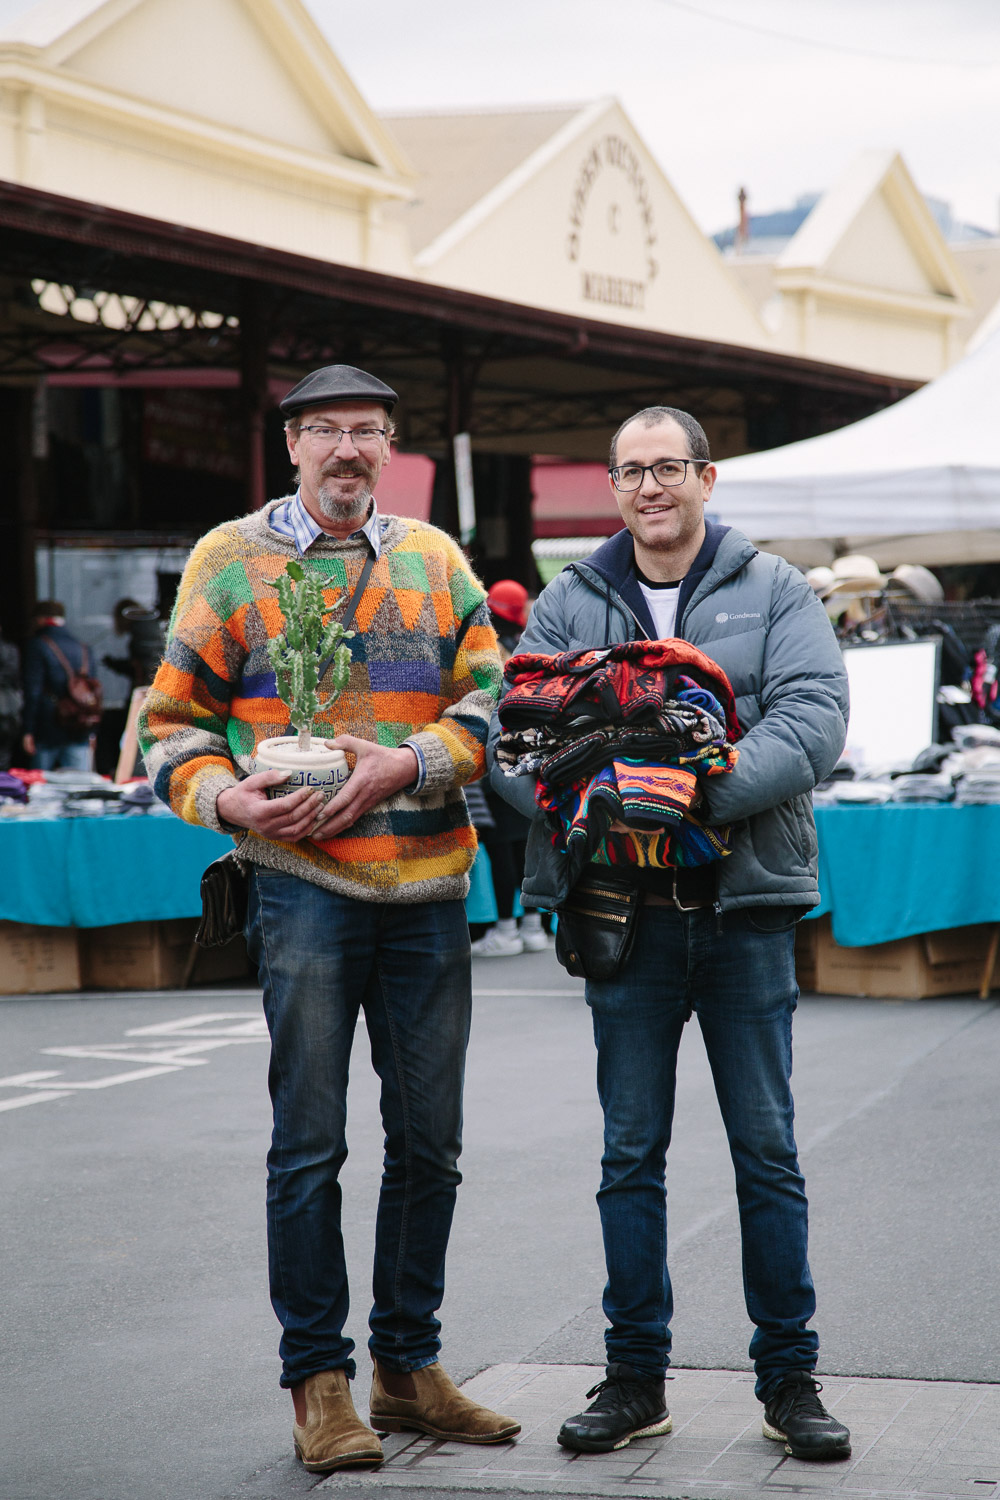 Andrew Thompson (left) of Cactusland and Ariel Lewin of Danny's Knitwear.  Photograph by Emma Byrnes.